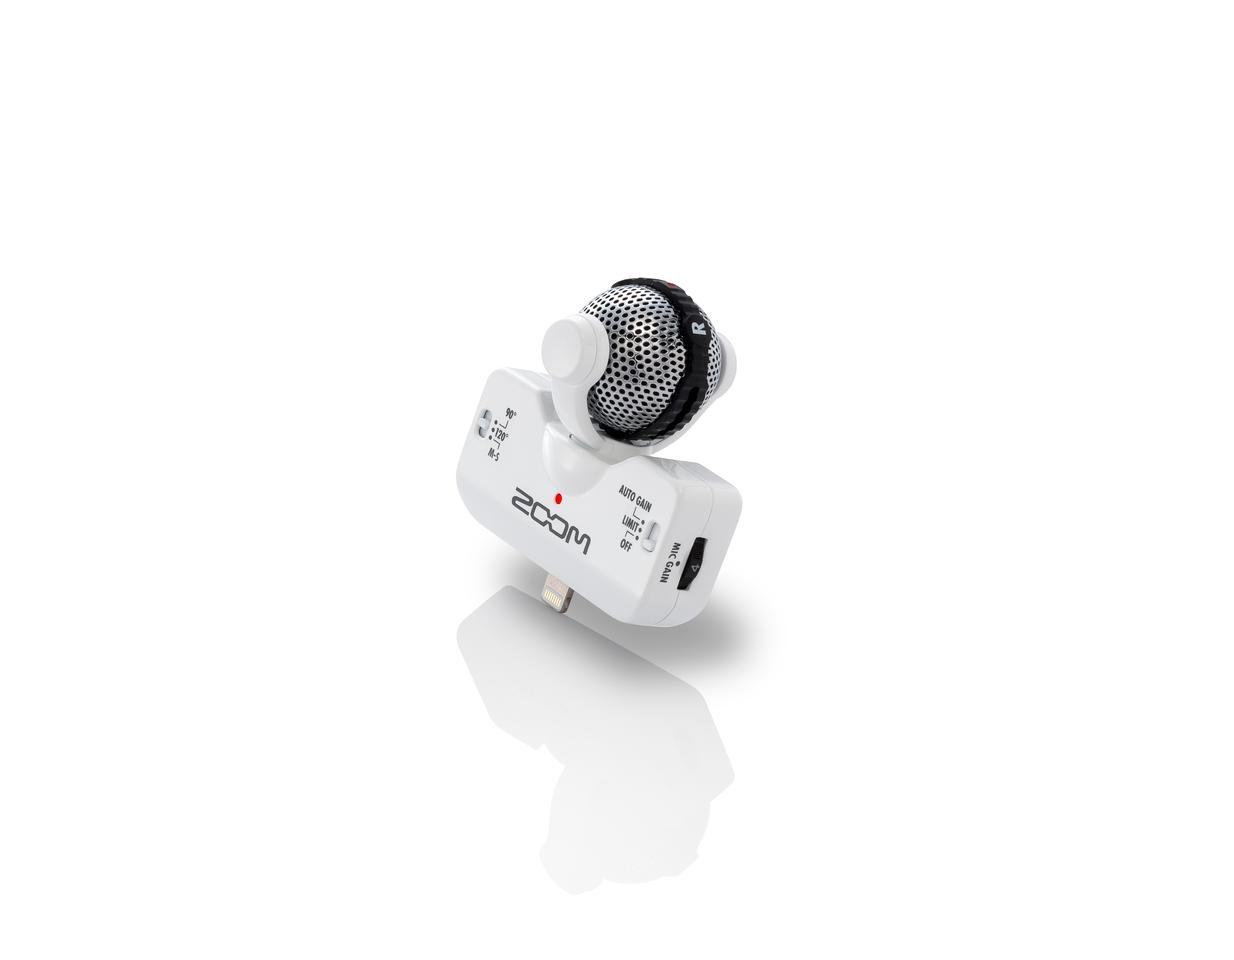 The iQ5 features a unique rotating mechanism which allows for left-right stereo recording at CD-quality resolution, even if the iOS host device is capturing video in landscape mode